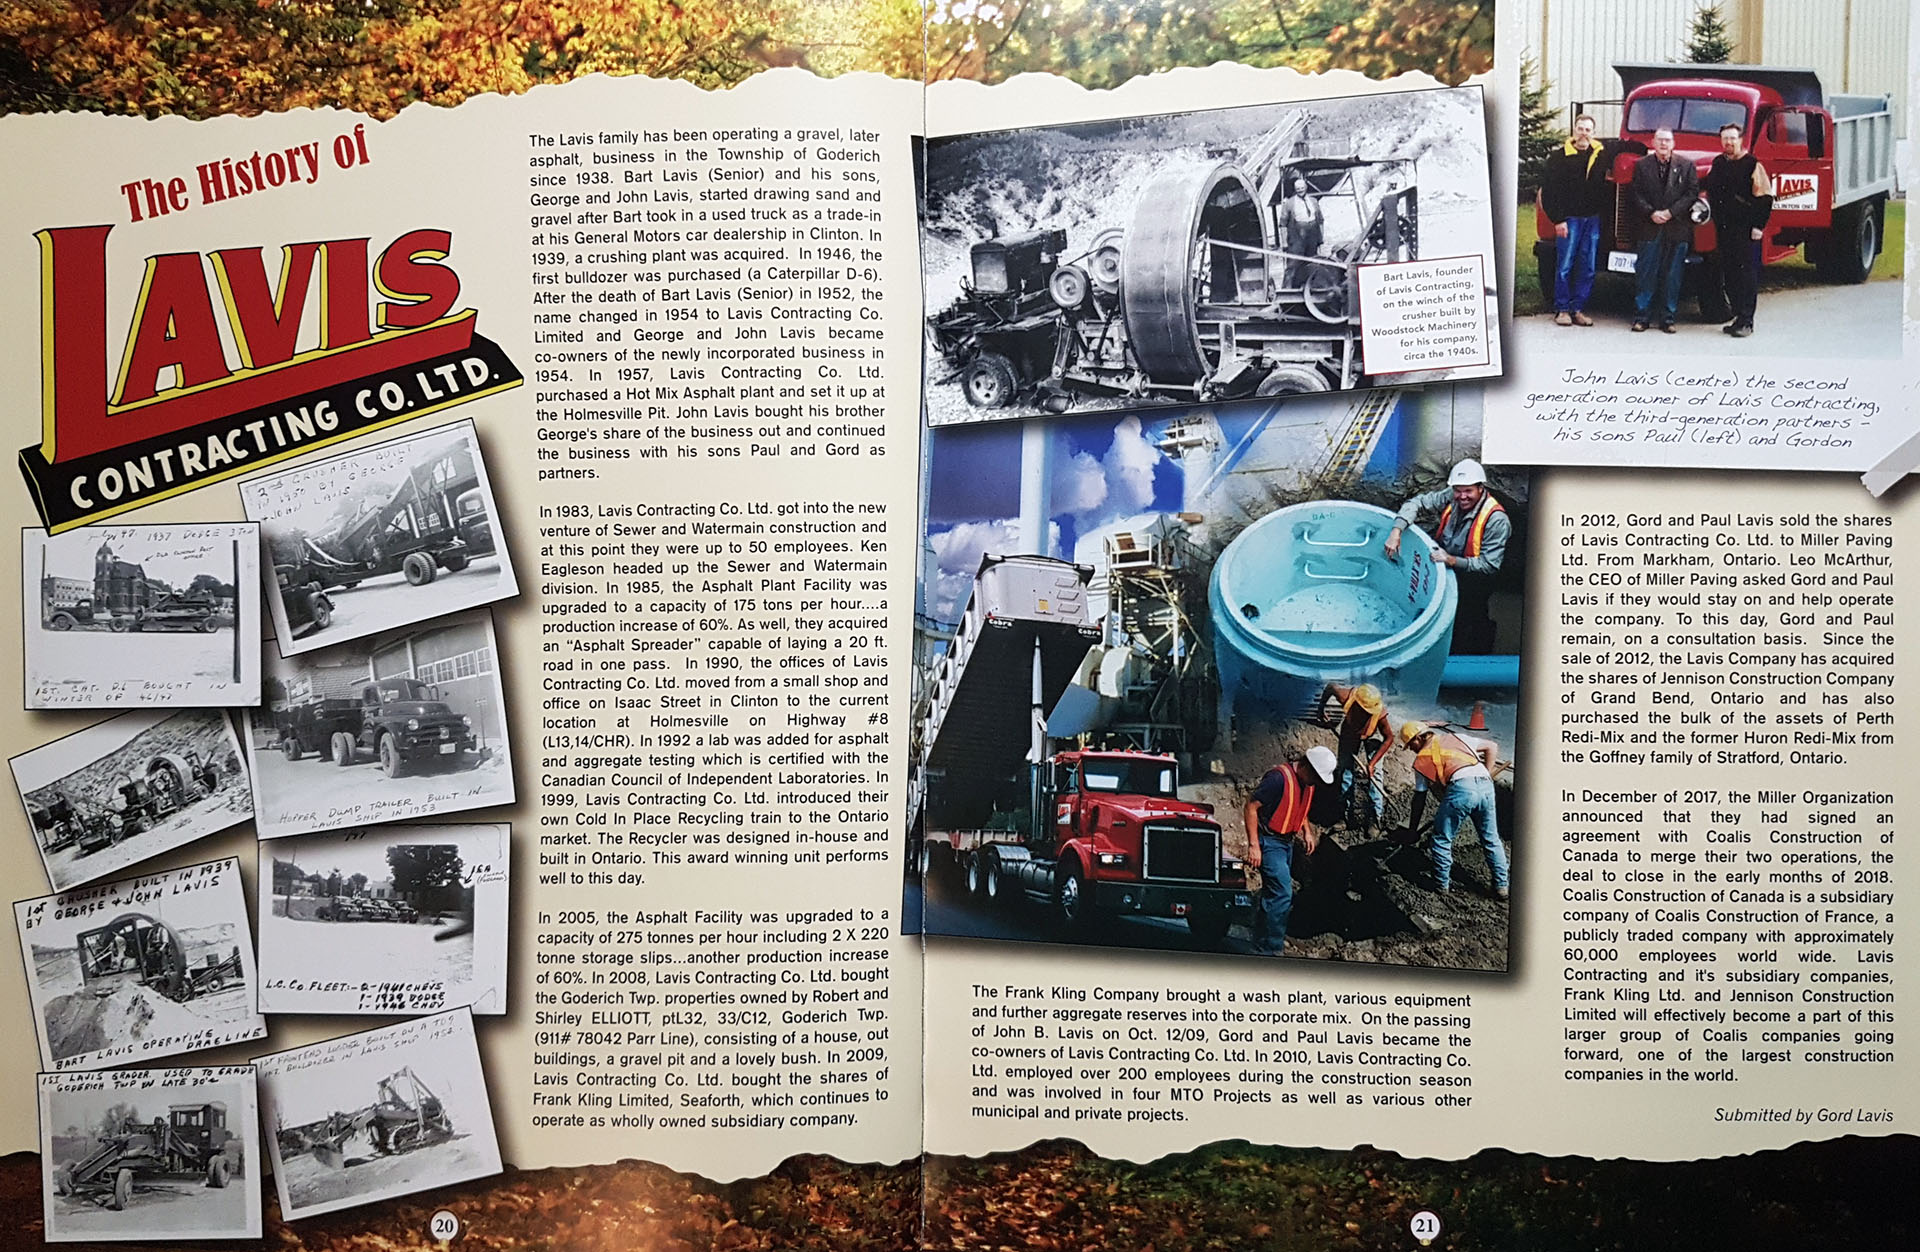 The history of Lavis Contracting Co. Limited